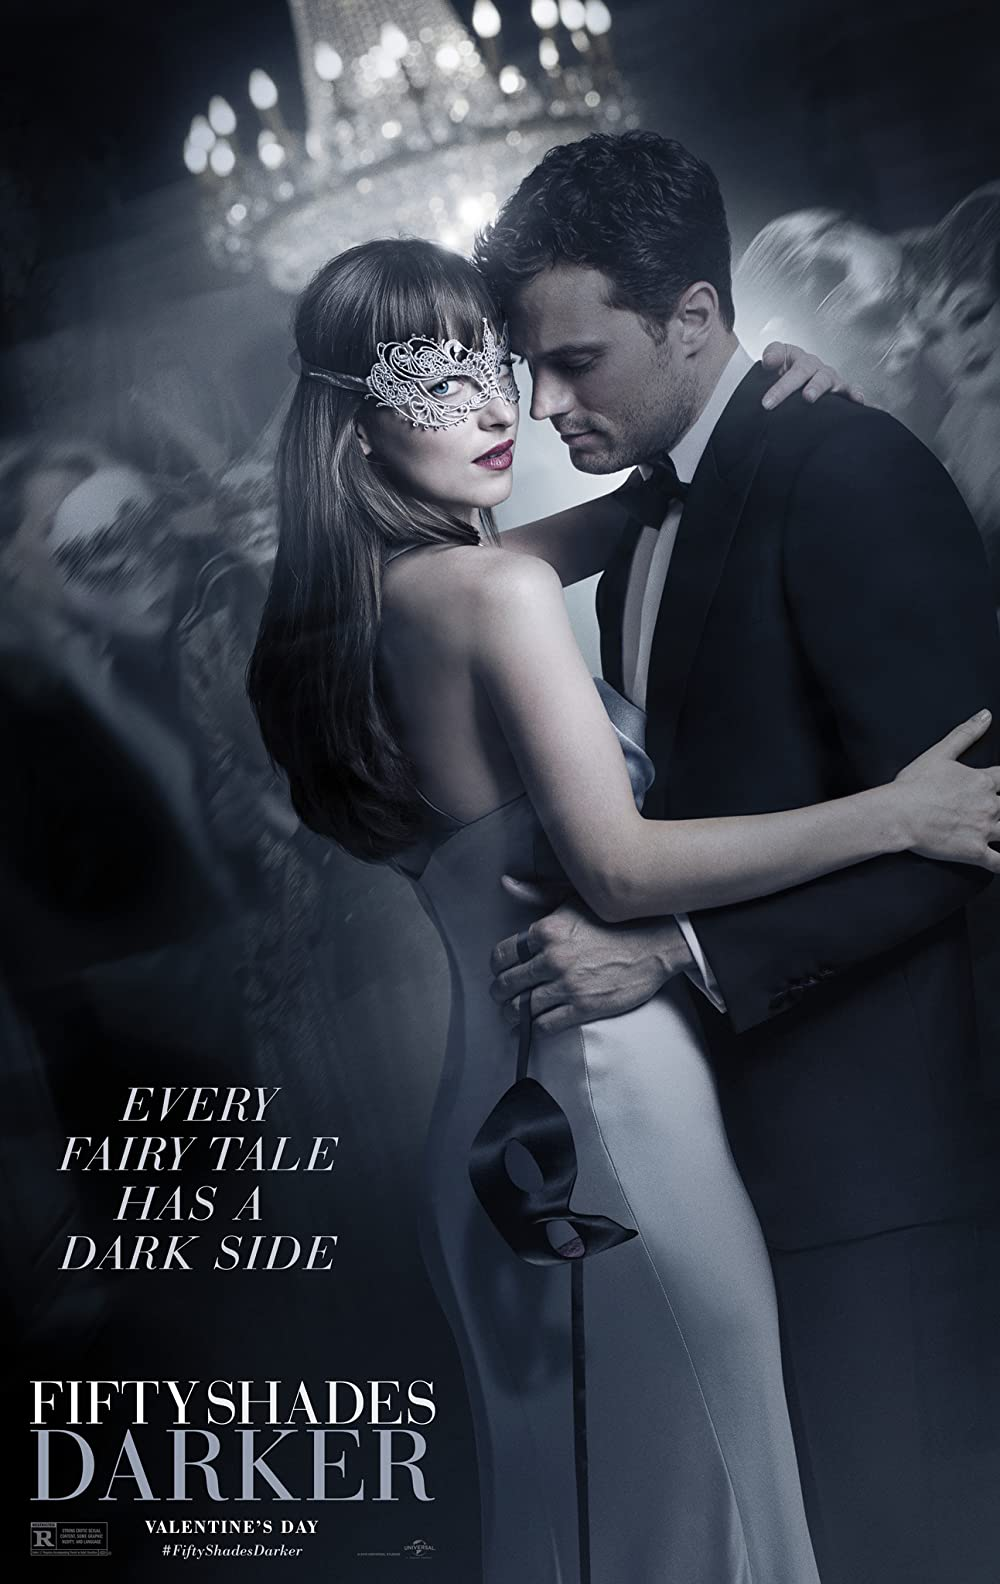 18+ Fifty Shades Darker 2017 Hindi Dual Audio 450MB UNRATED BluRay ESubs 480p x264 AAC